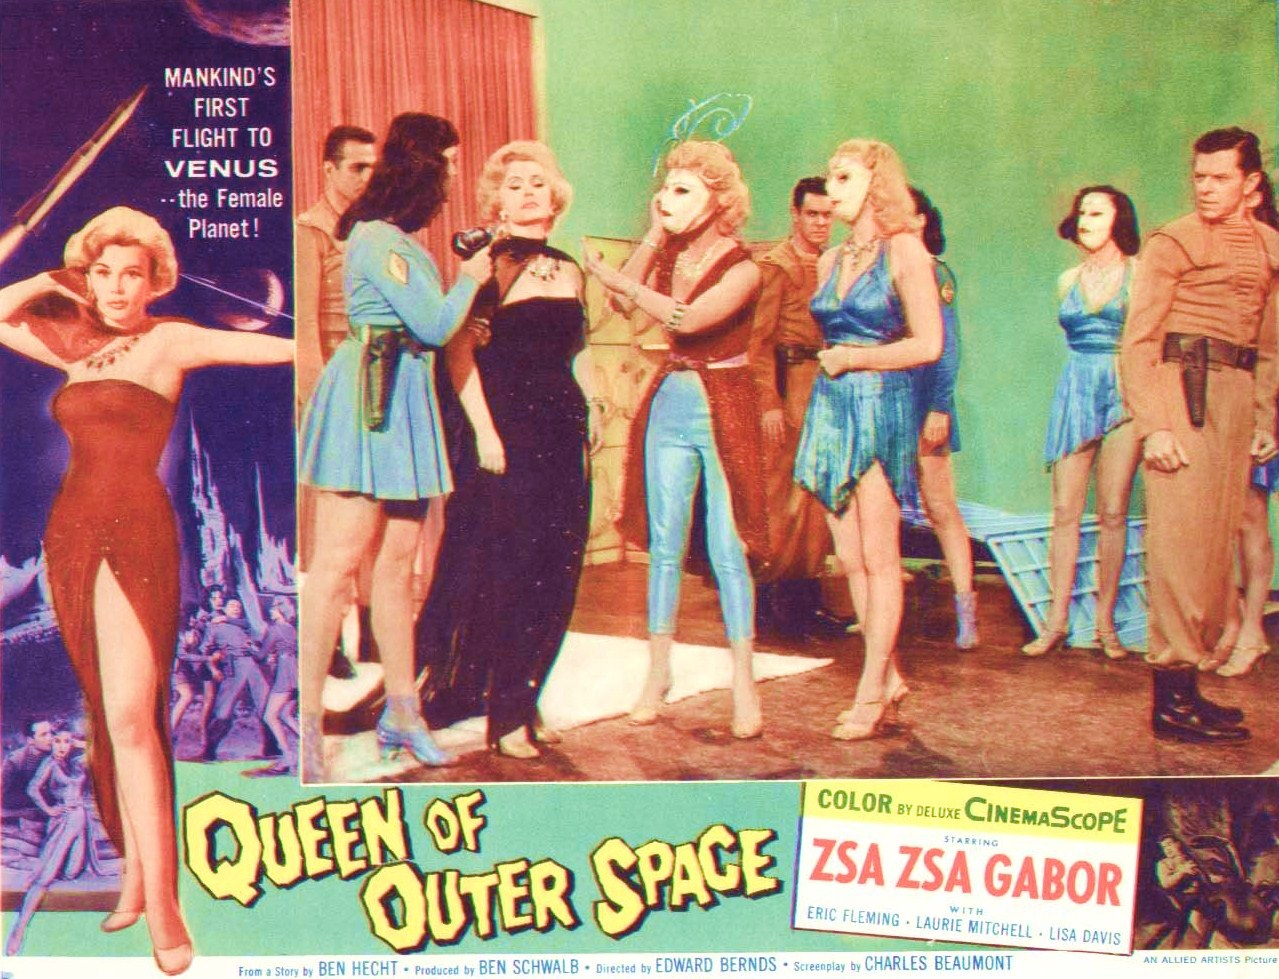 The queen of outer space